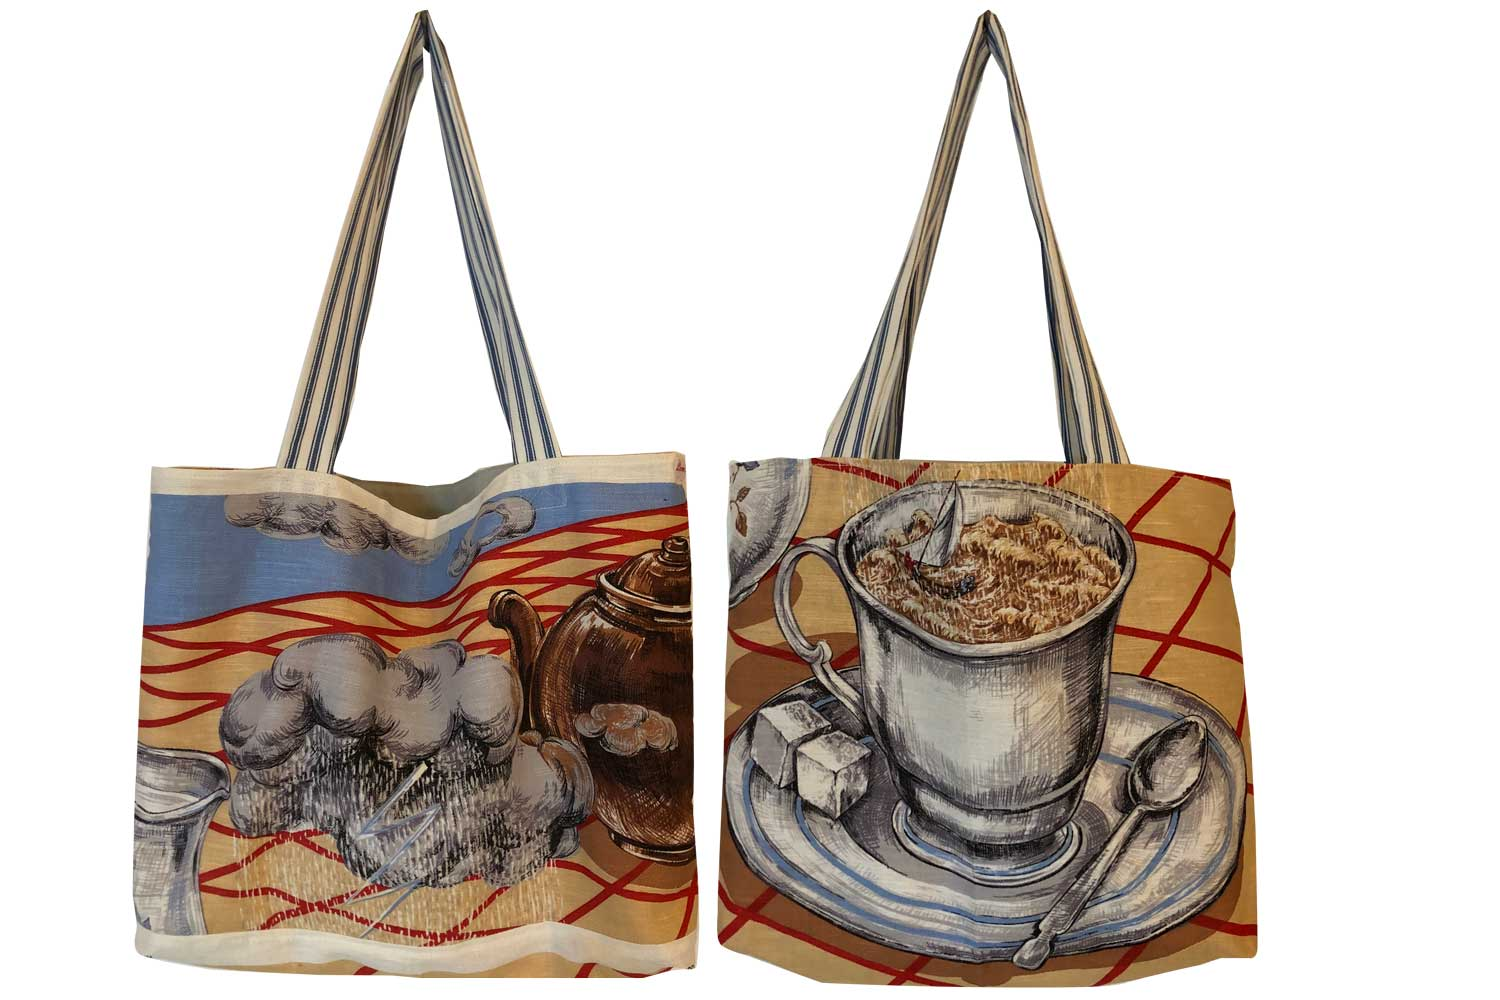 Storm in a teacup teatowel tote